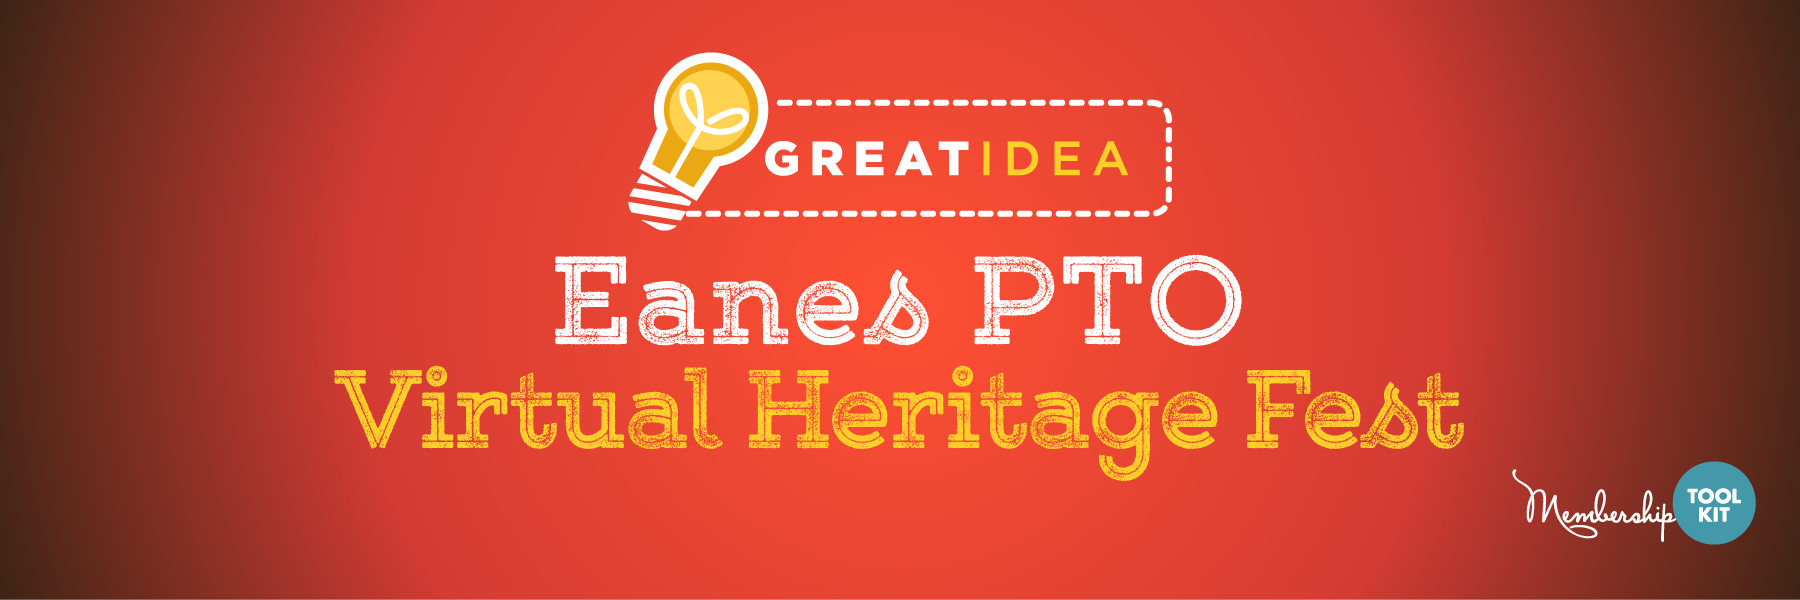 Eanes PTO plans a Virtual Heritage Festival